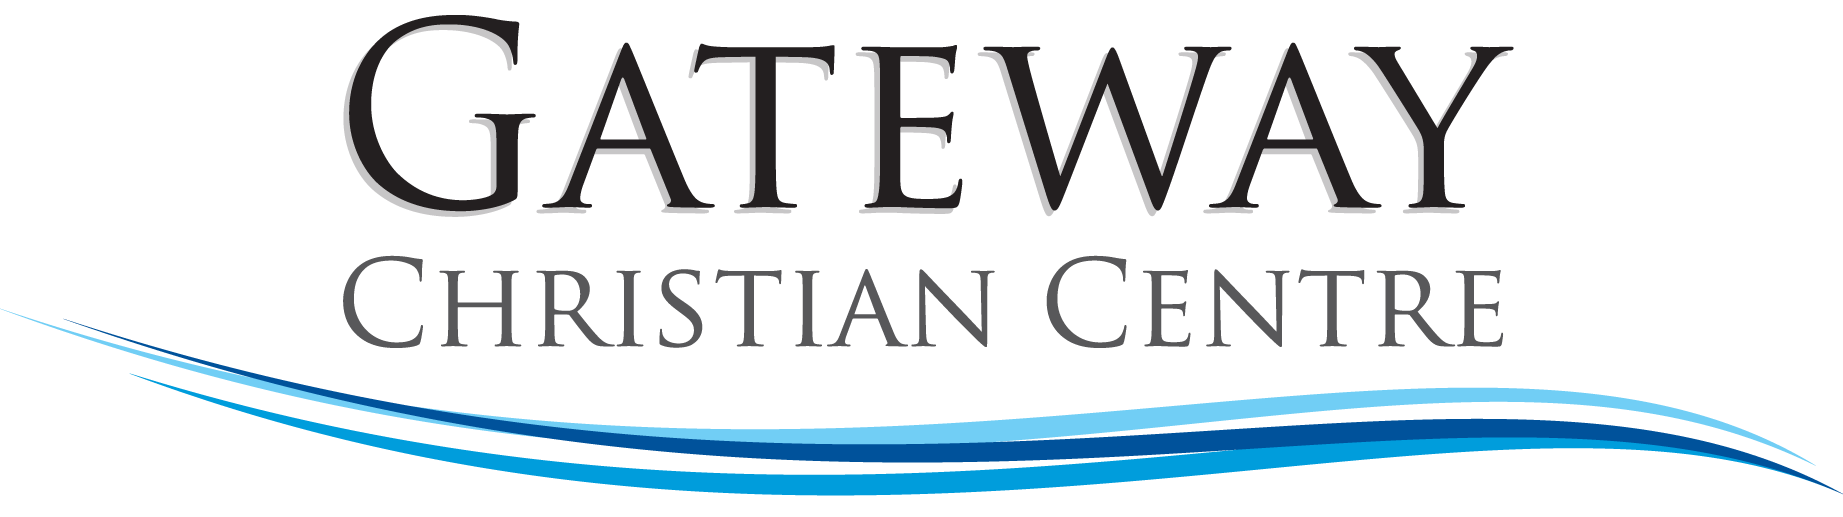 Gateway Christian Centre